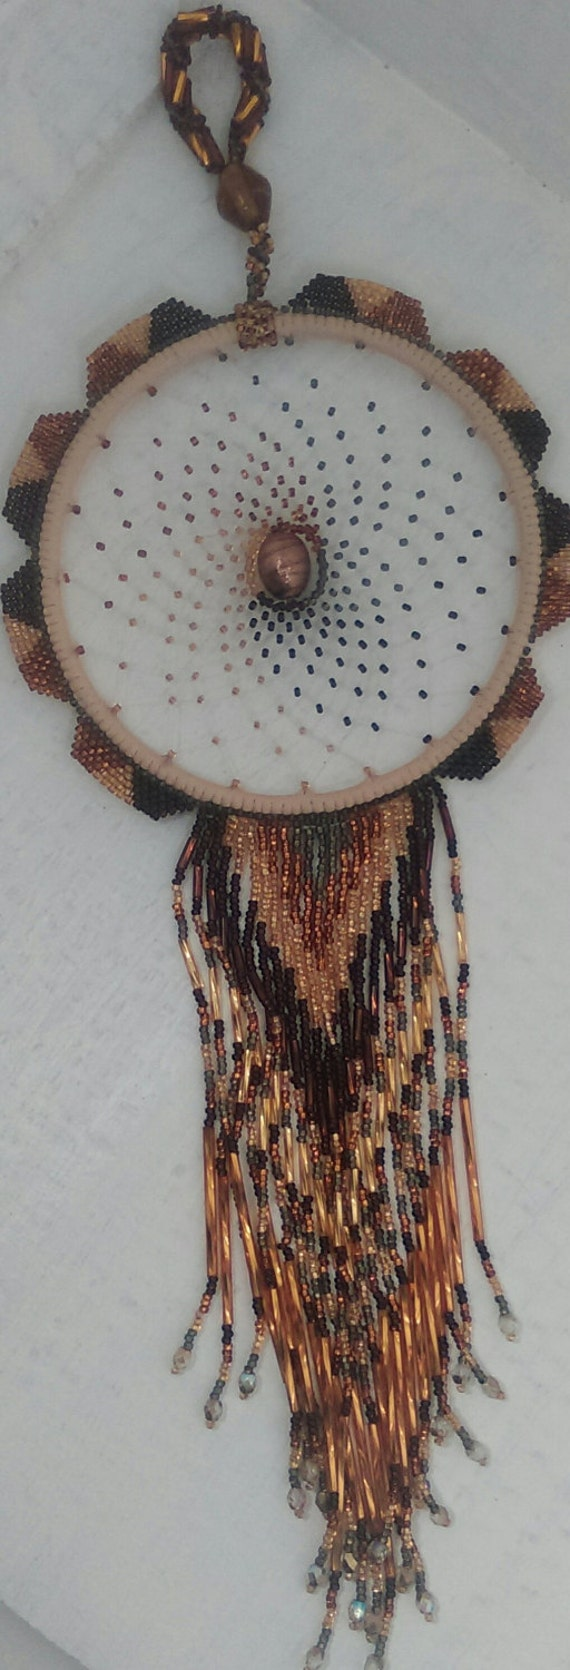 Beaded Dream-catcher - Wall Decor Copper, Brown, Gold Czech Glass Silver lined beads,